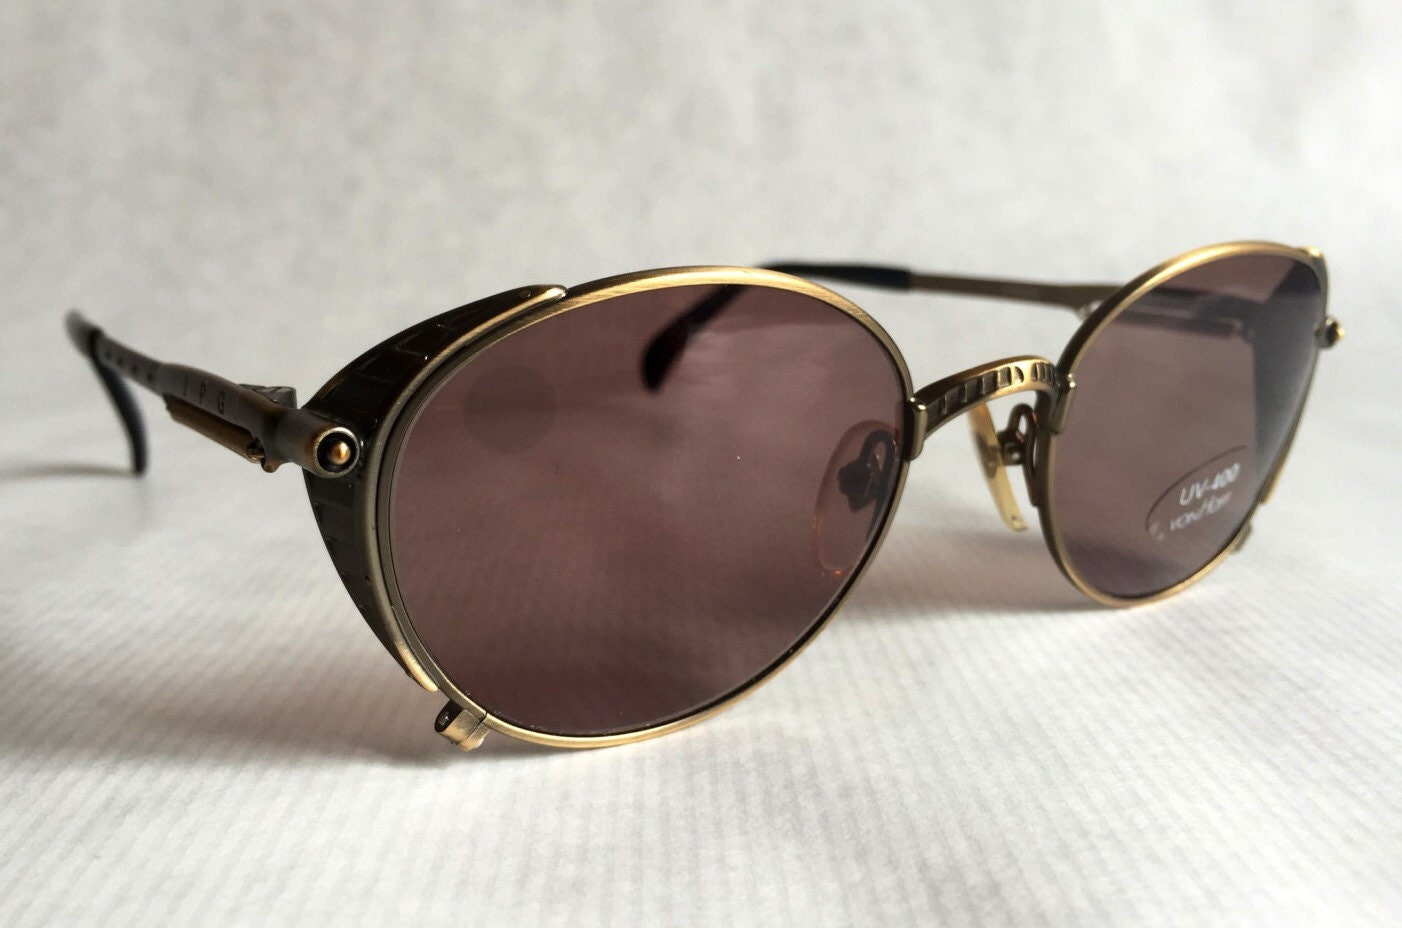 Jean Paul Gaultier 56 4174 Vintage Sunglasses New Unworn